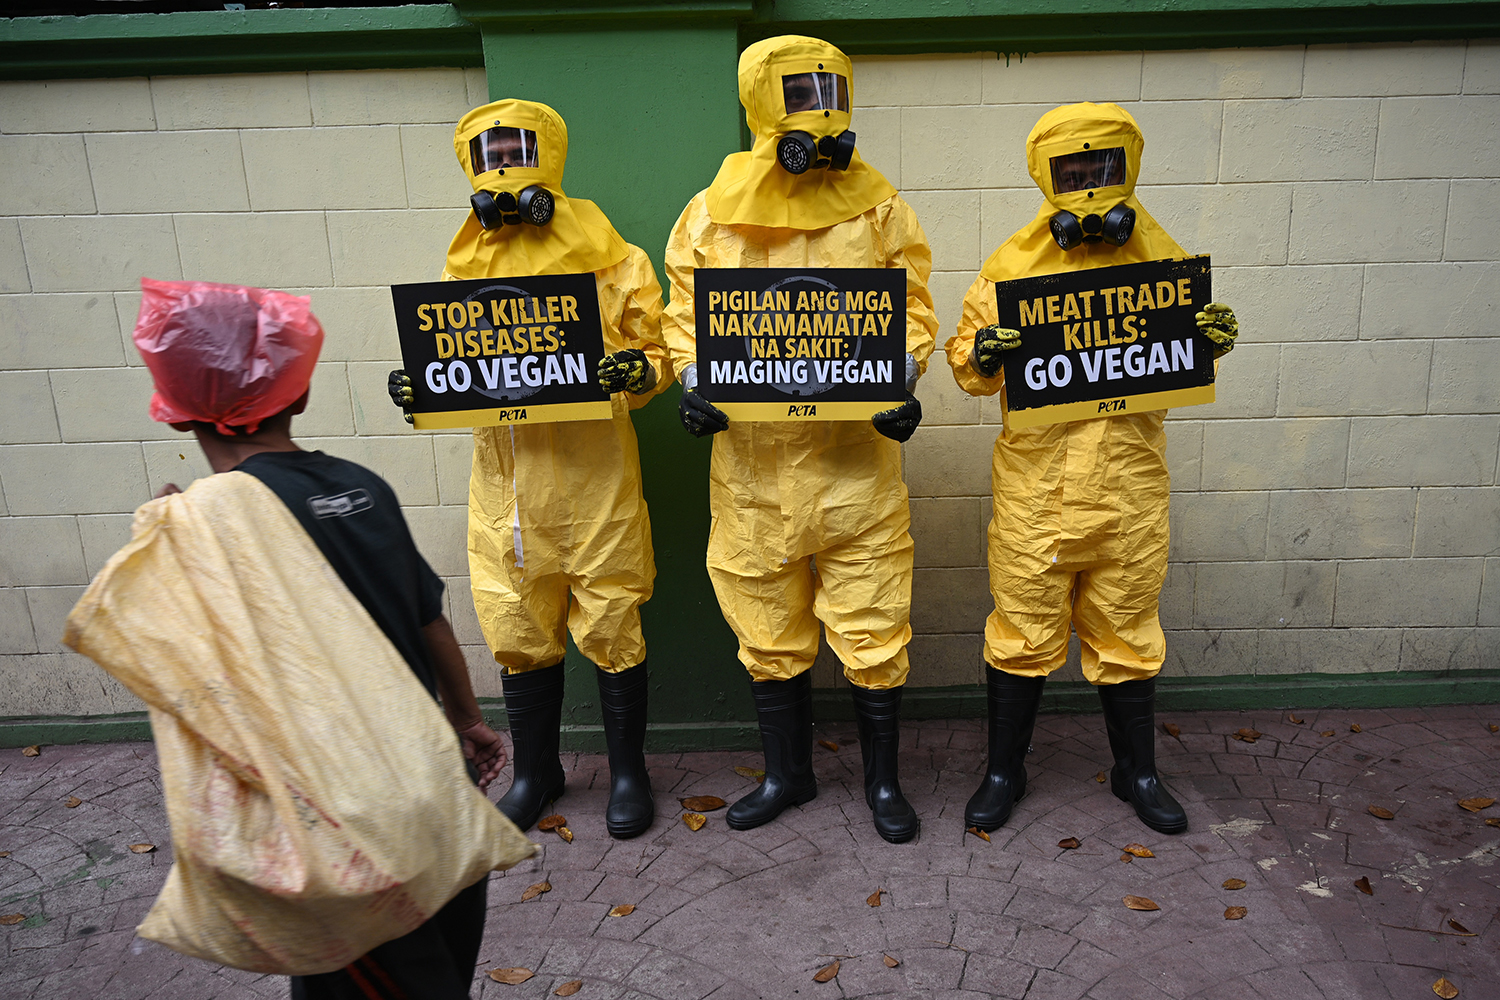 Members of People for the Ethical Treatment of Animals (PETA) wear biohazard suits and hold signs during a protest in front of the department of health in Manila, Philippines, on Feb. 13. TED ALJIBE/AFP via Getty Images